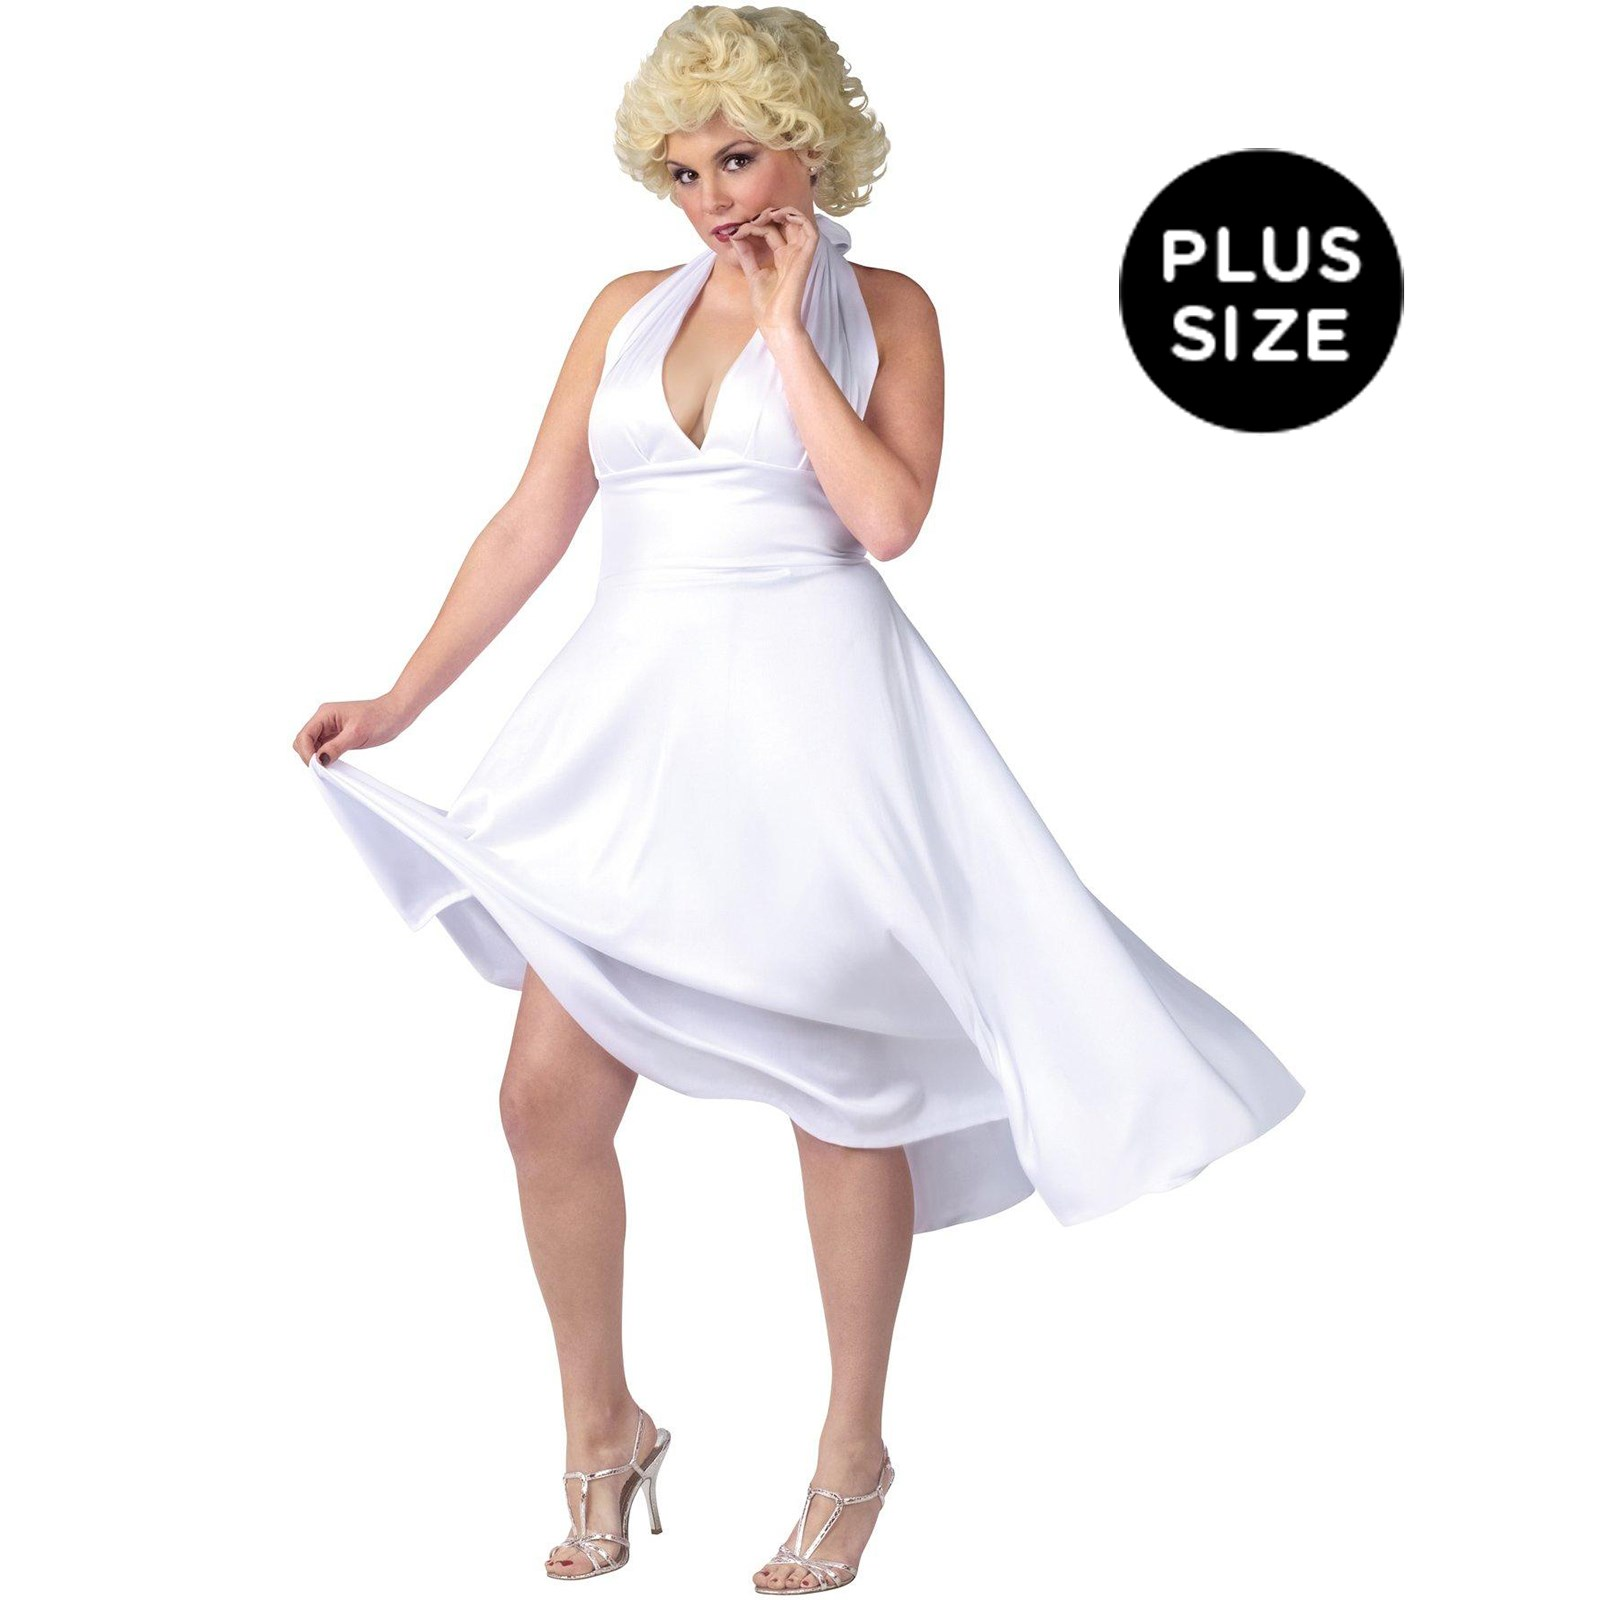 Marilyn Monroe Deluxe Classic Adult Plus Costume